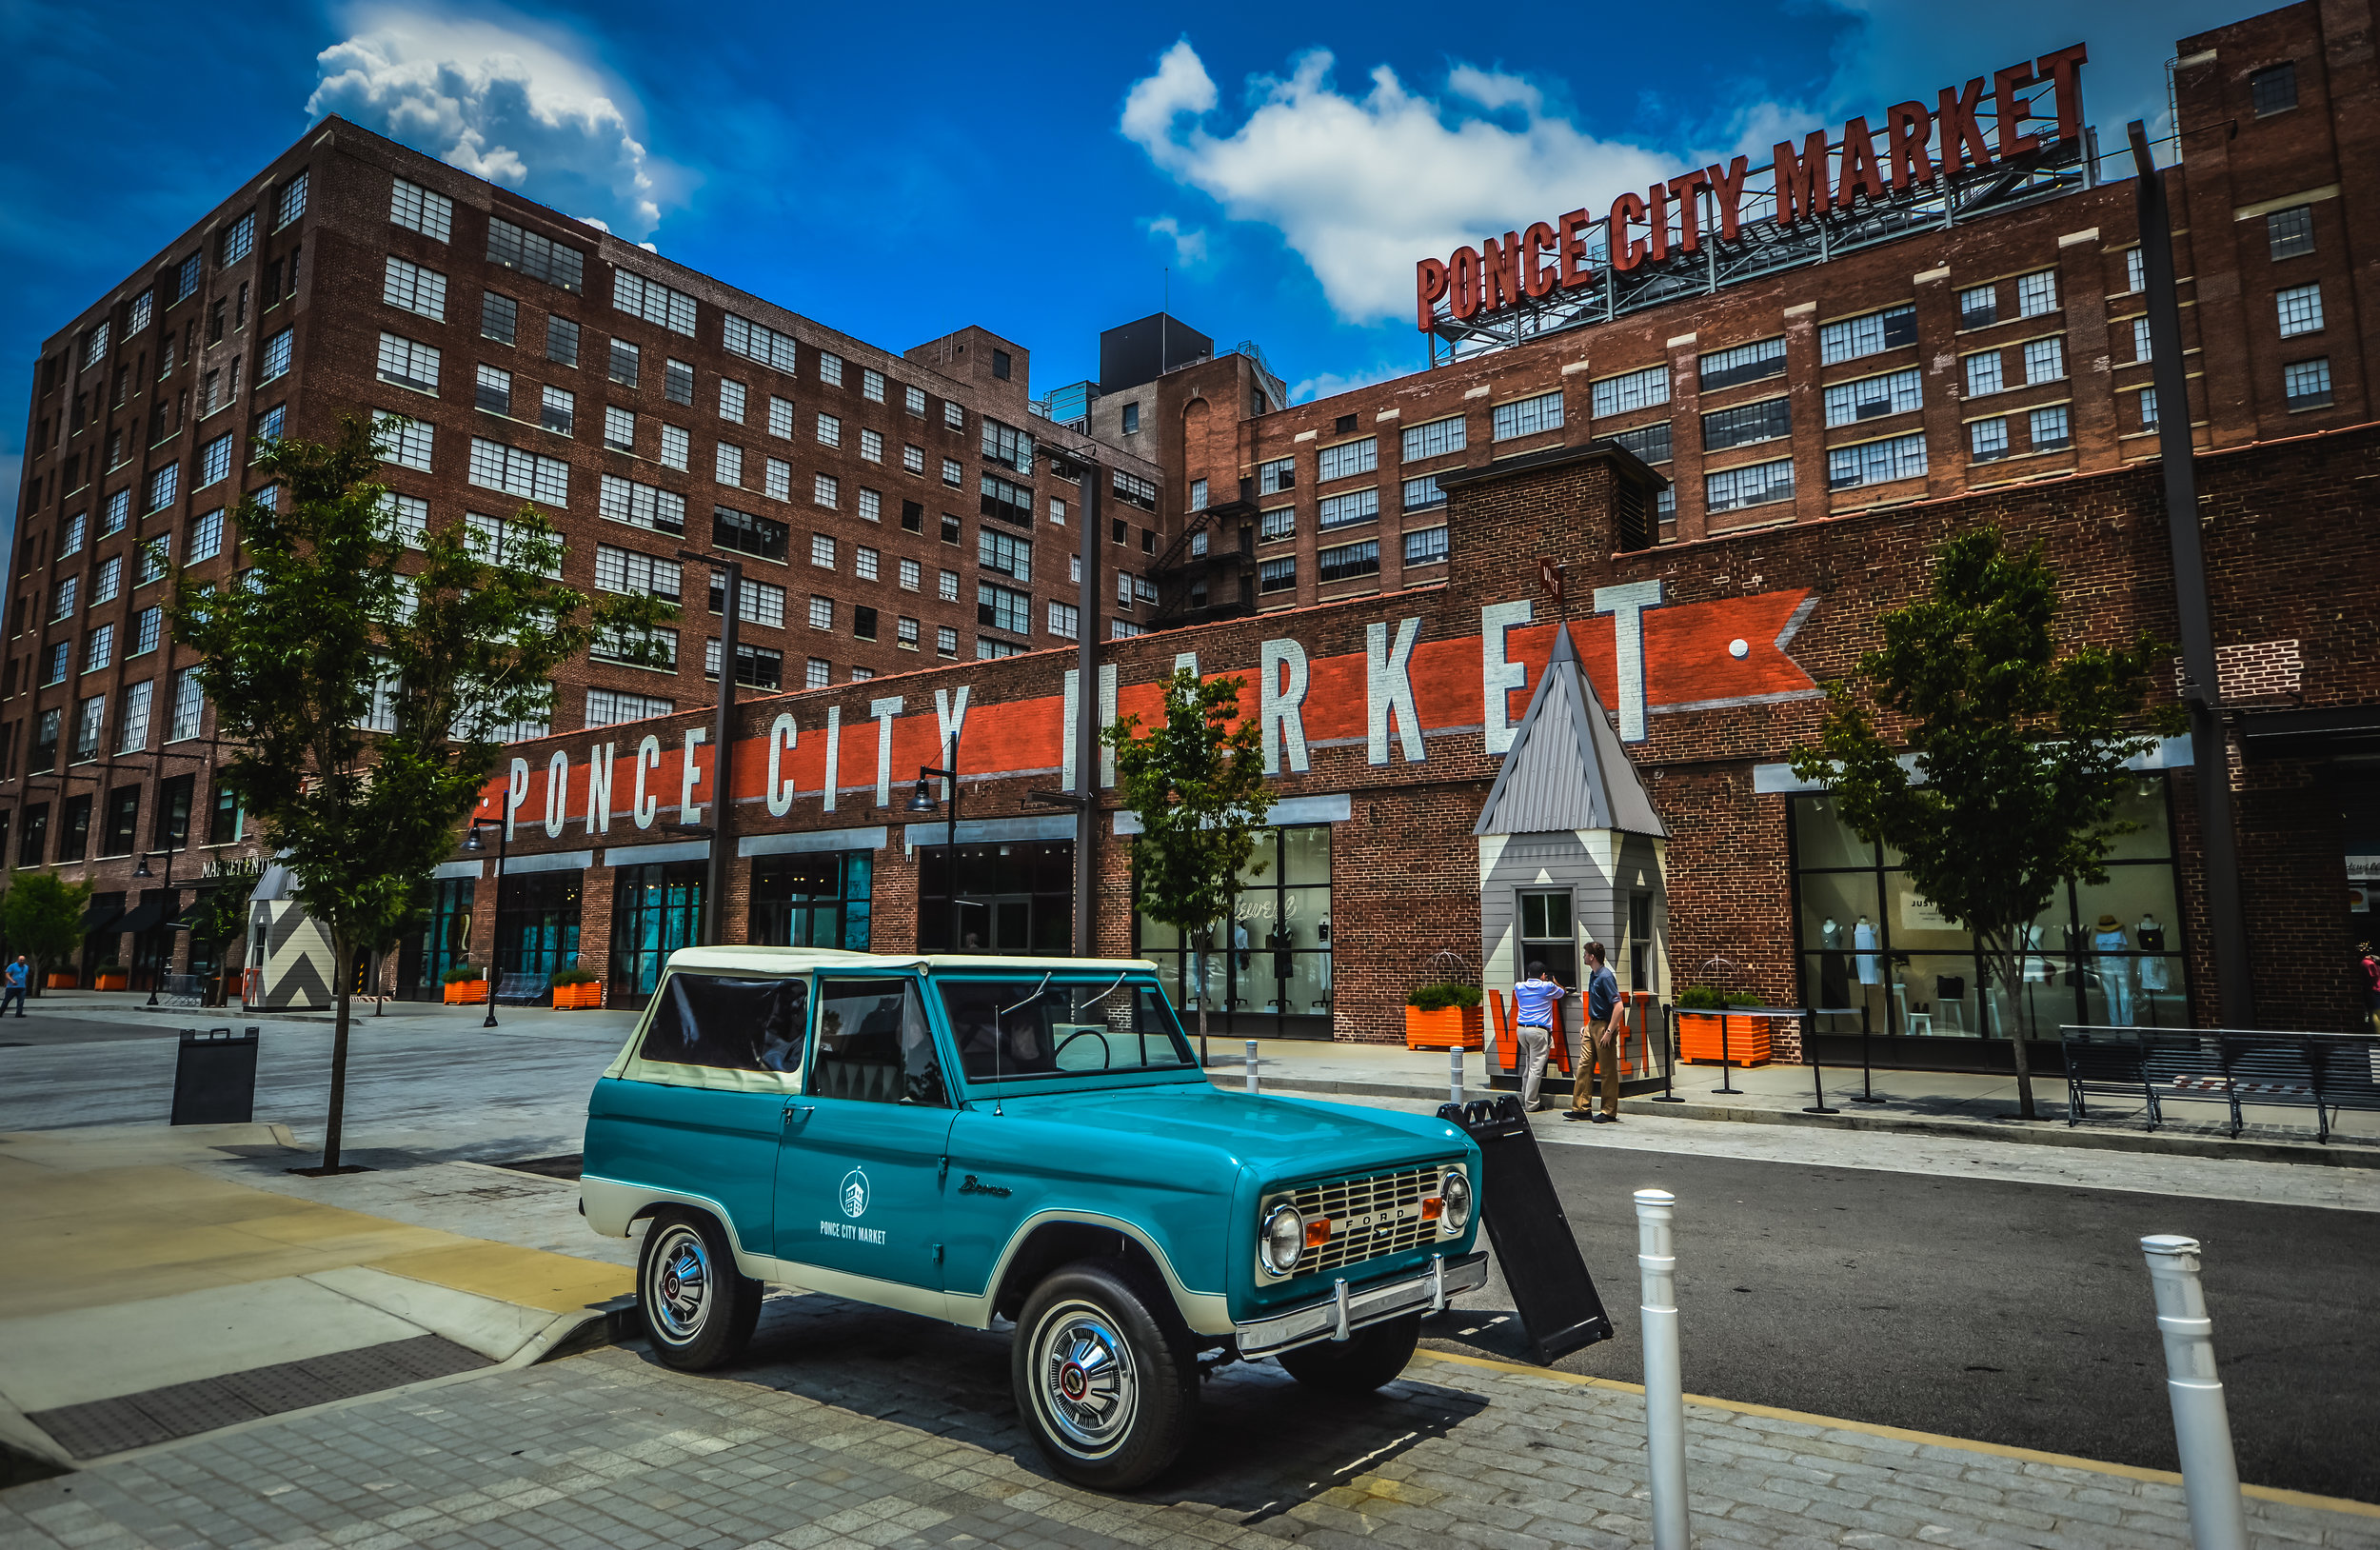 Ponce City is Open for Business, 2016